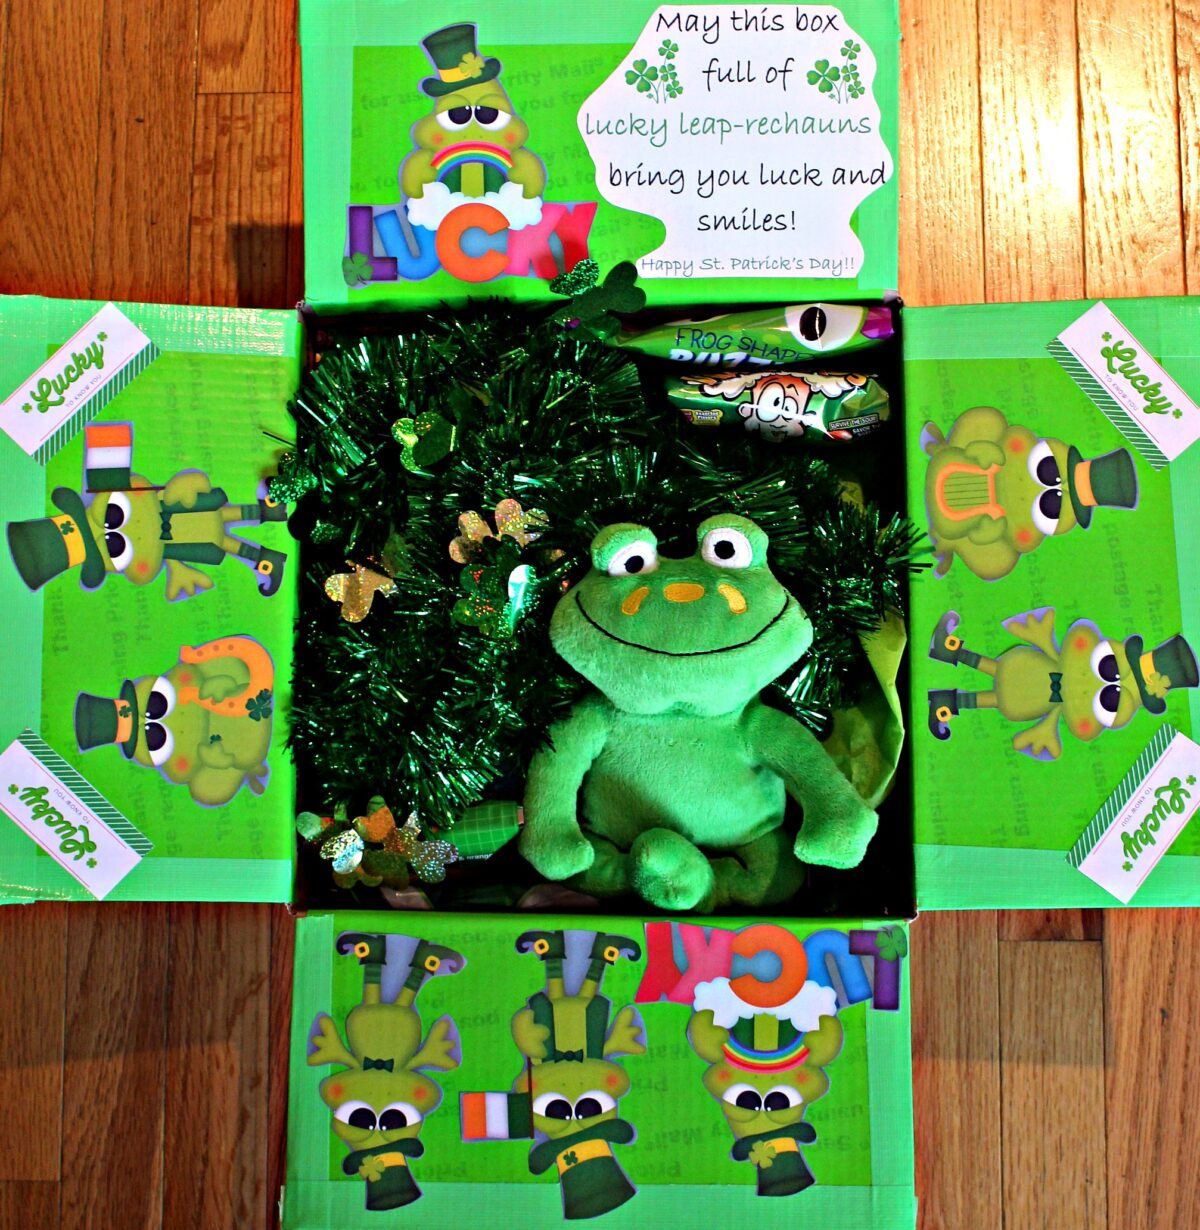 A care package box with flaps decorated with green cartoon frogs and a stuffed frog inside.